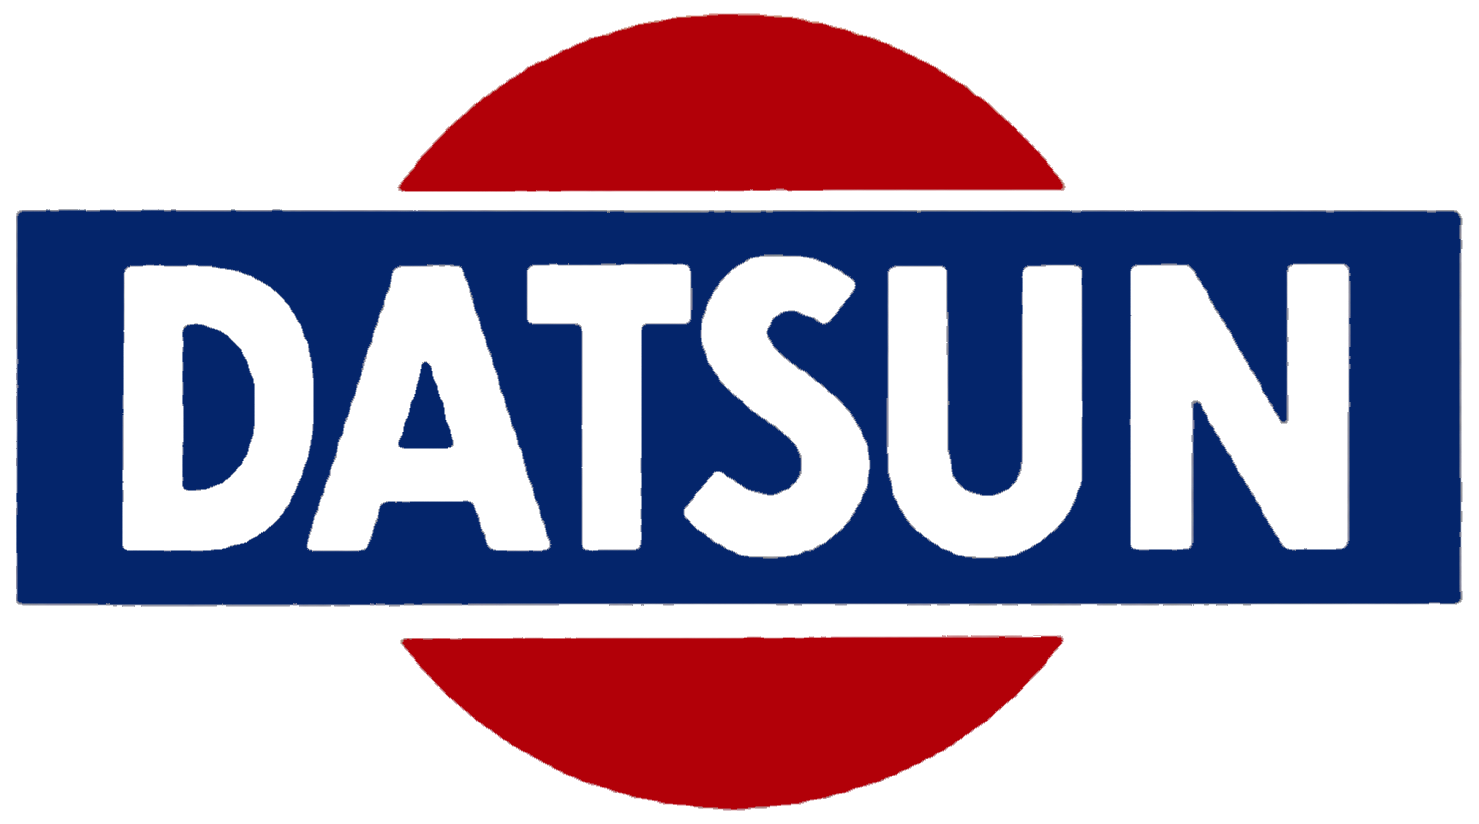 http://upload.wikimedia.org/wikipedia/commons/f/f8/Datsun_logo.png